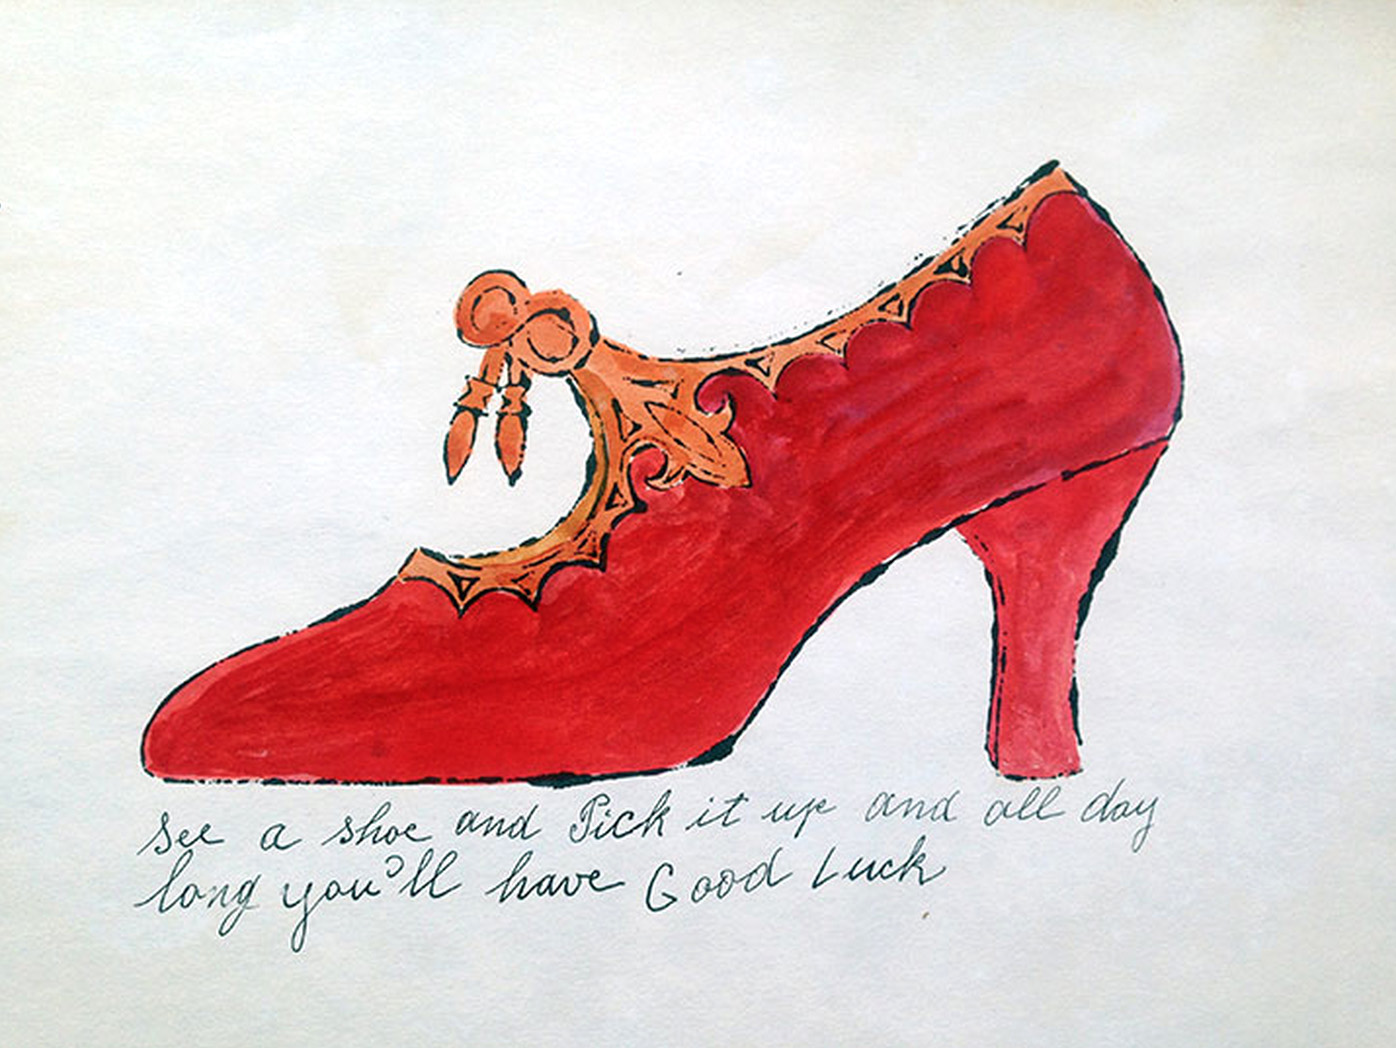 See a shoe Pick it Up from the Shoe Portfolio by Andy Warhol